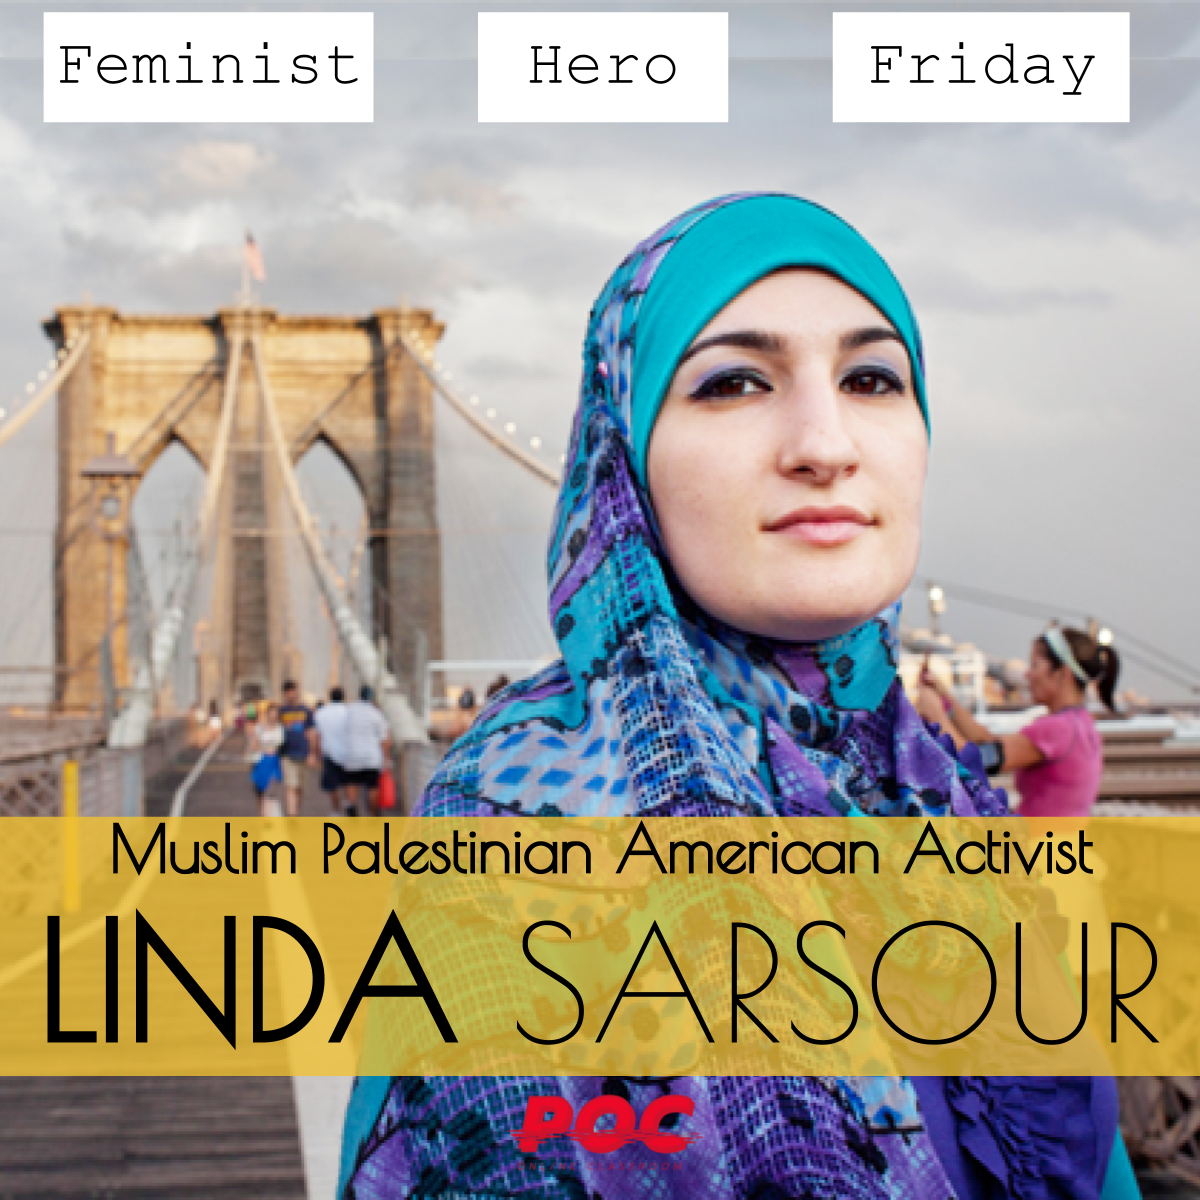 """Image description: Picture of Linda Sarsour, wearing a patterned blue hijab and staring at the camera, standing on the Brooklyn Bridge. At the top is text reading """"Feminist Hero Friday."""" At the bottom is larger text with a yellow background that reads """"Muslim Palestinian American Activist Linda Sarsour."""""""